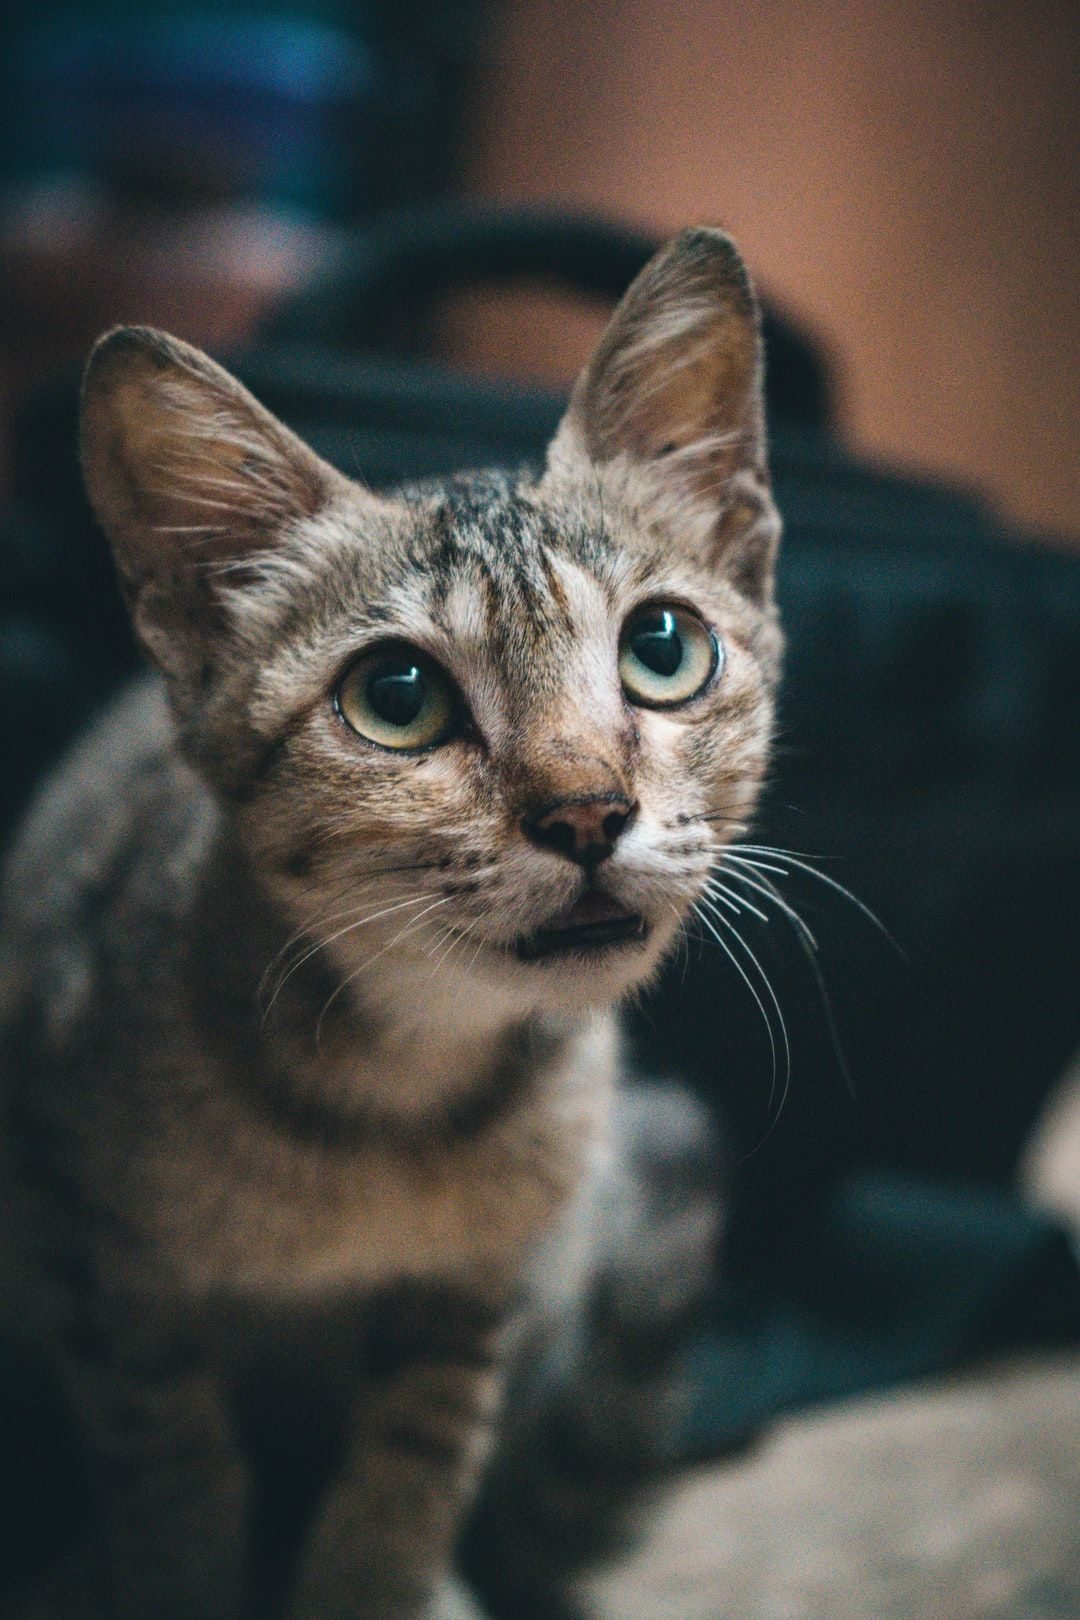 Download This Photo By Vignesh Kumar R B On Unsplash In 2020 Cats Cats And Kittens Kitten Images